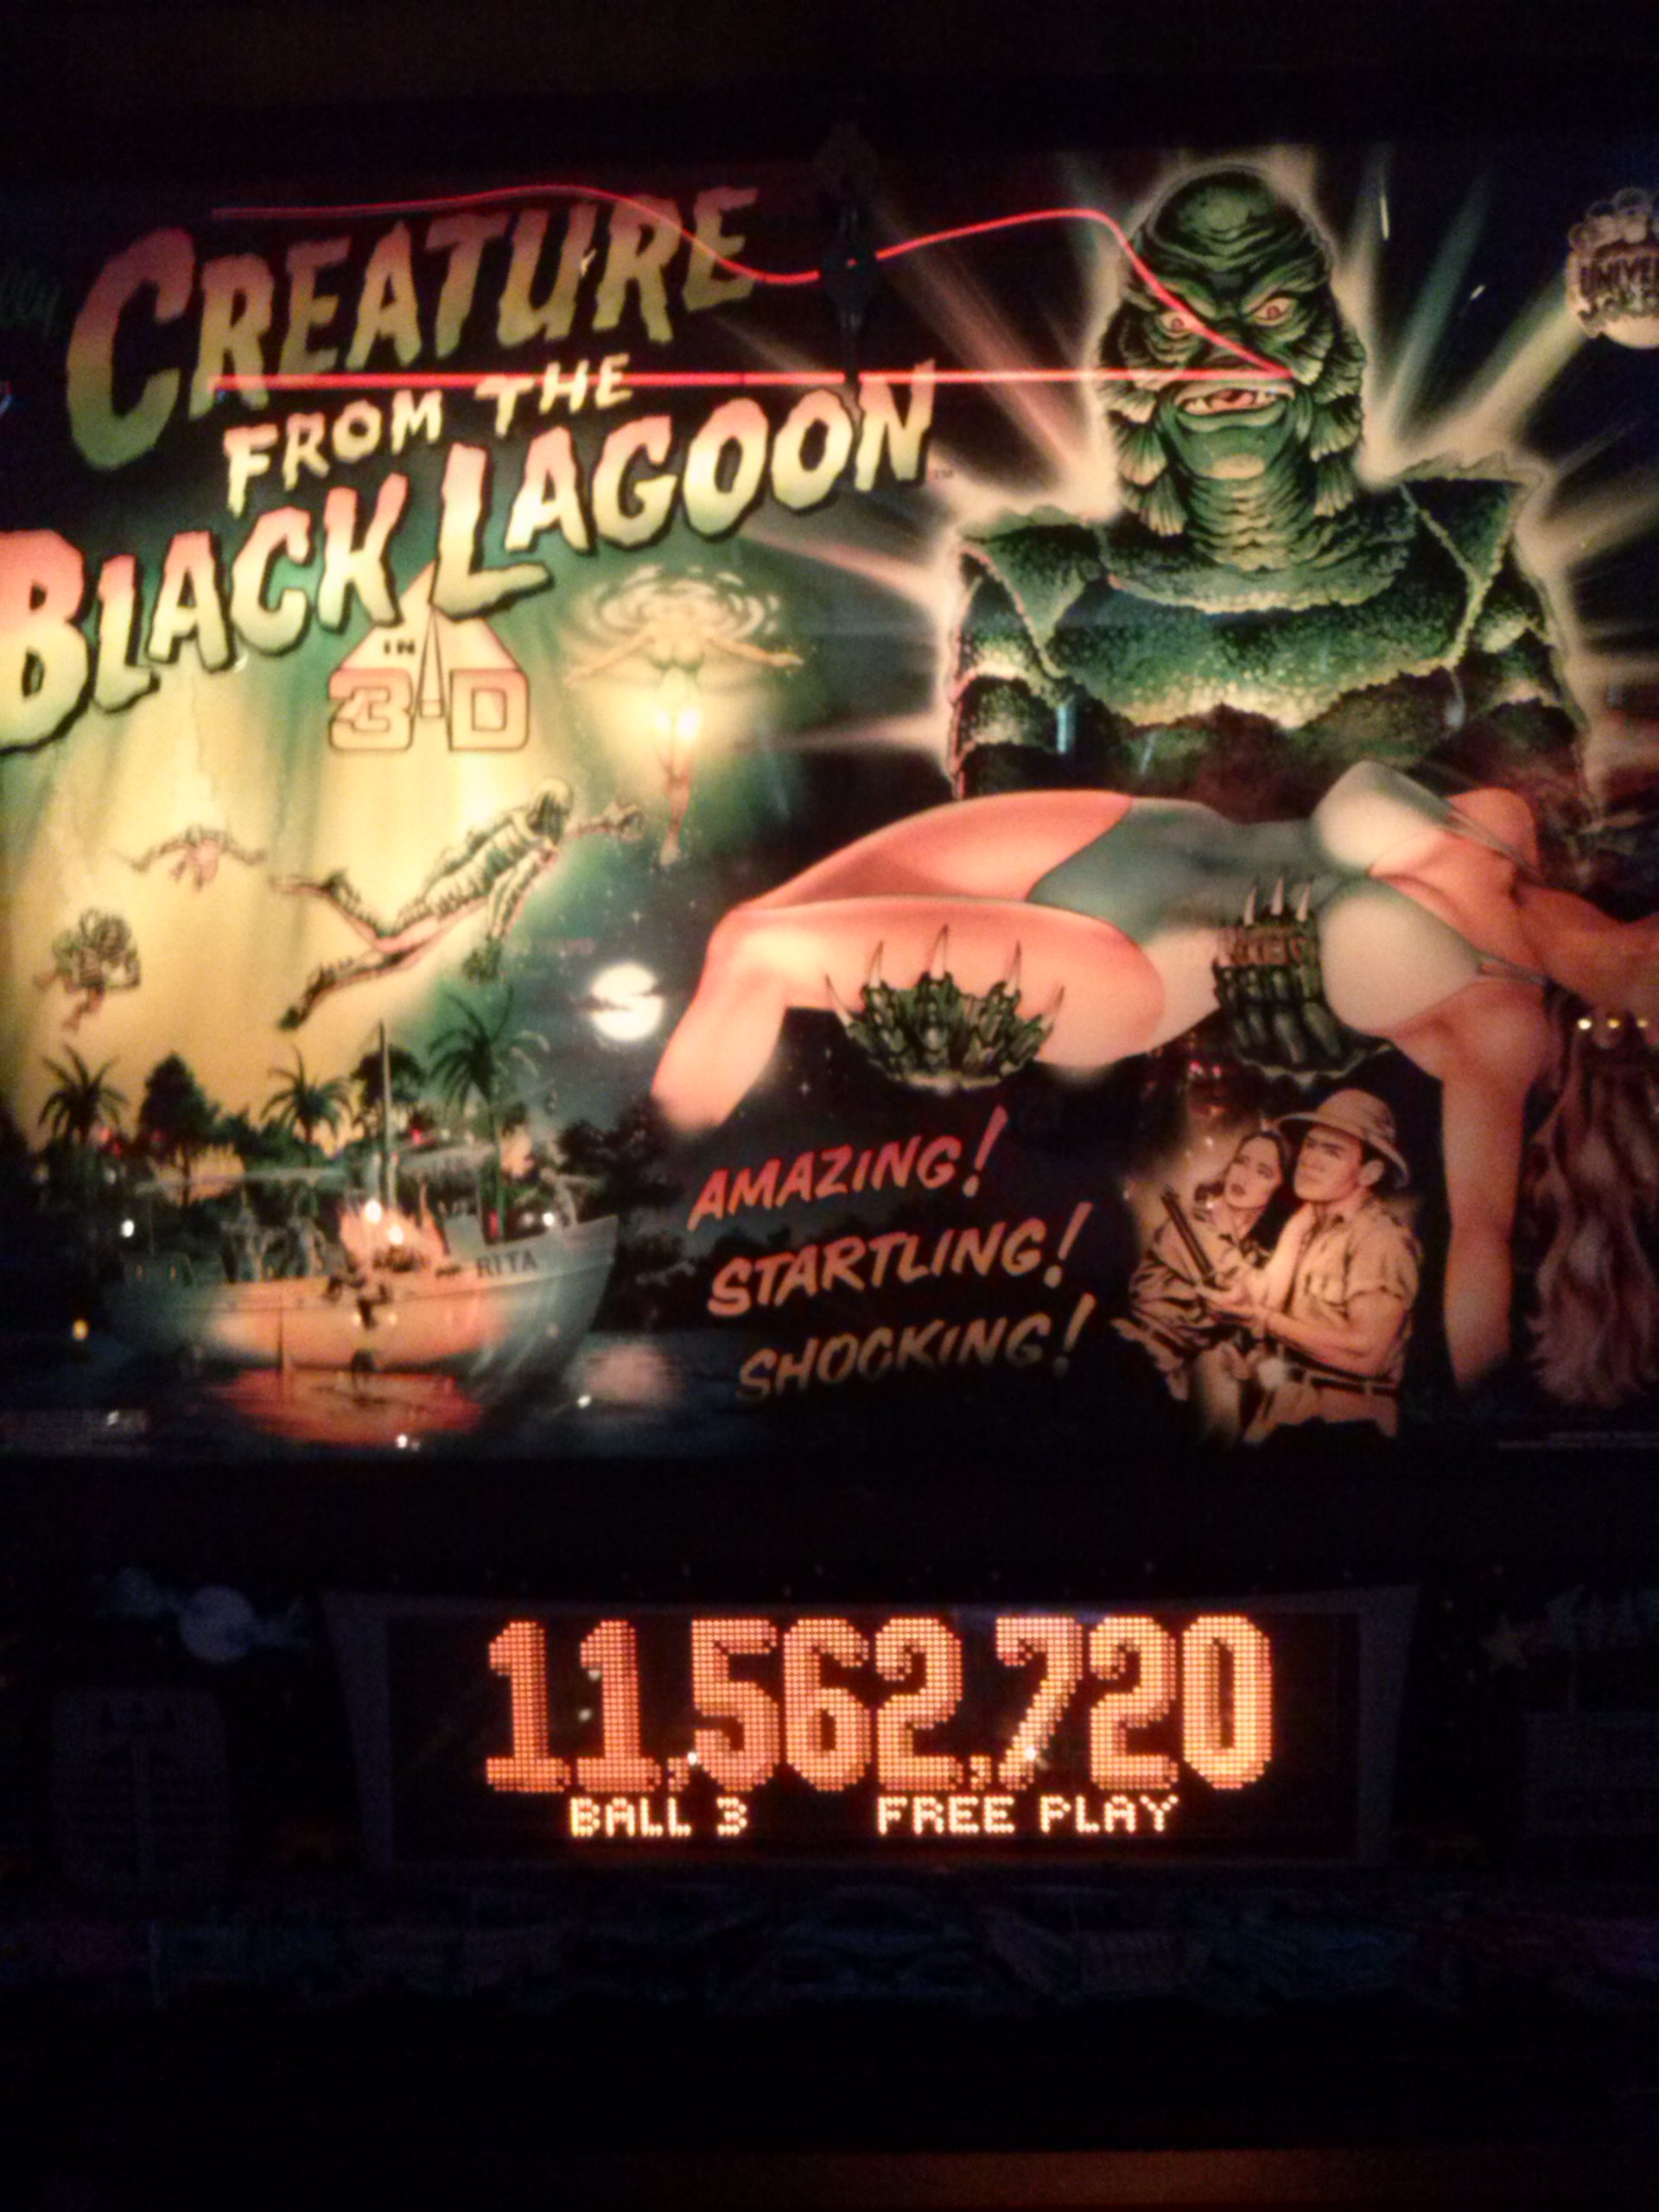 Creature from the Black Lagoon 11,562,720 points